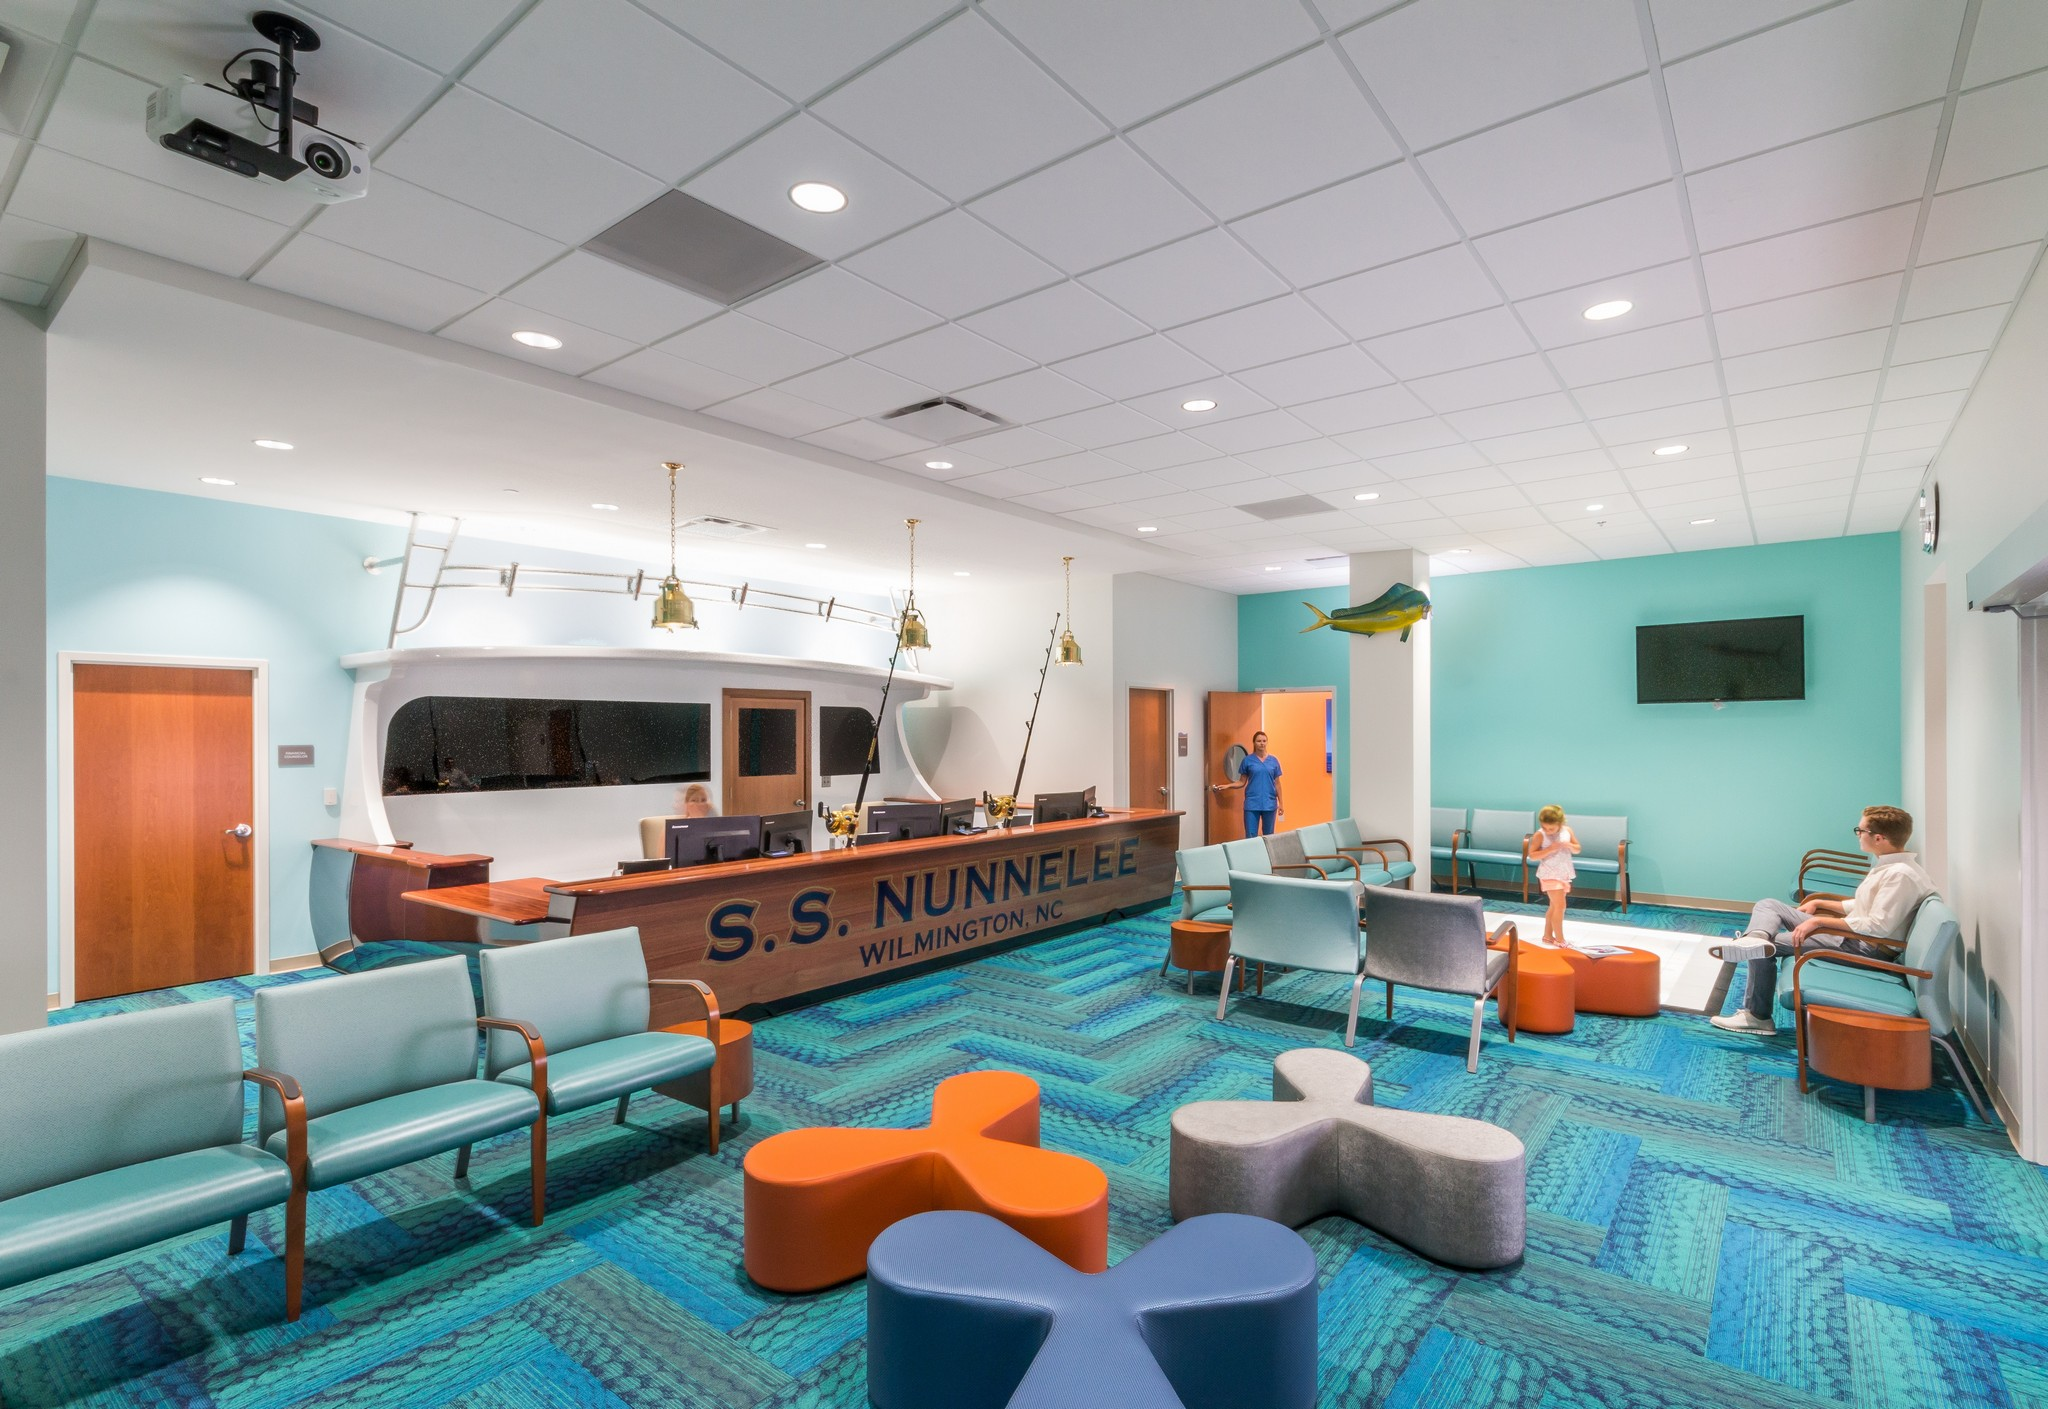 NHMG Nunnelee Pediatric Specialty Clinic